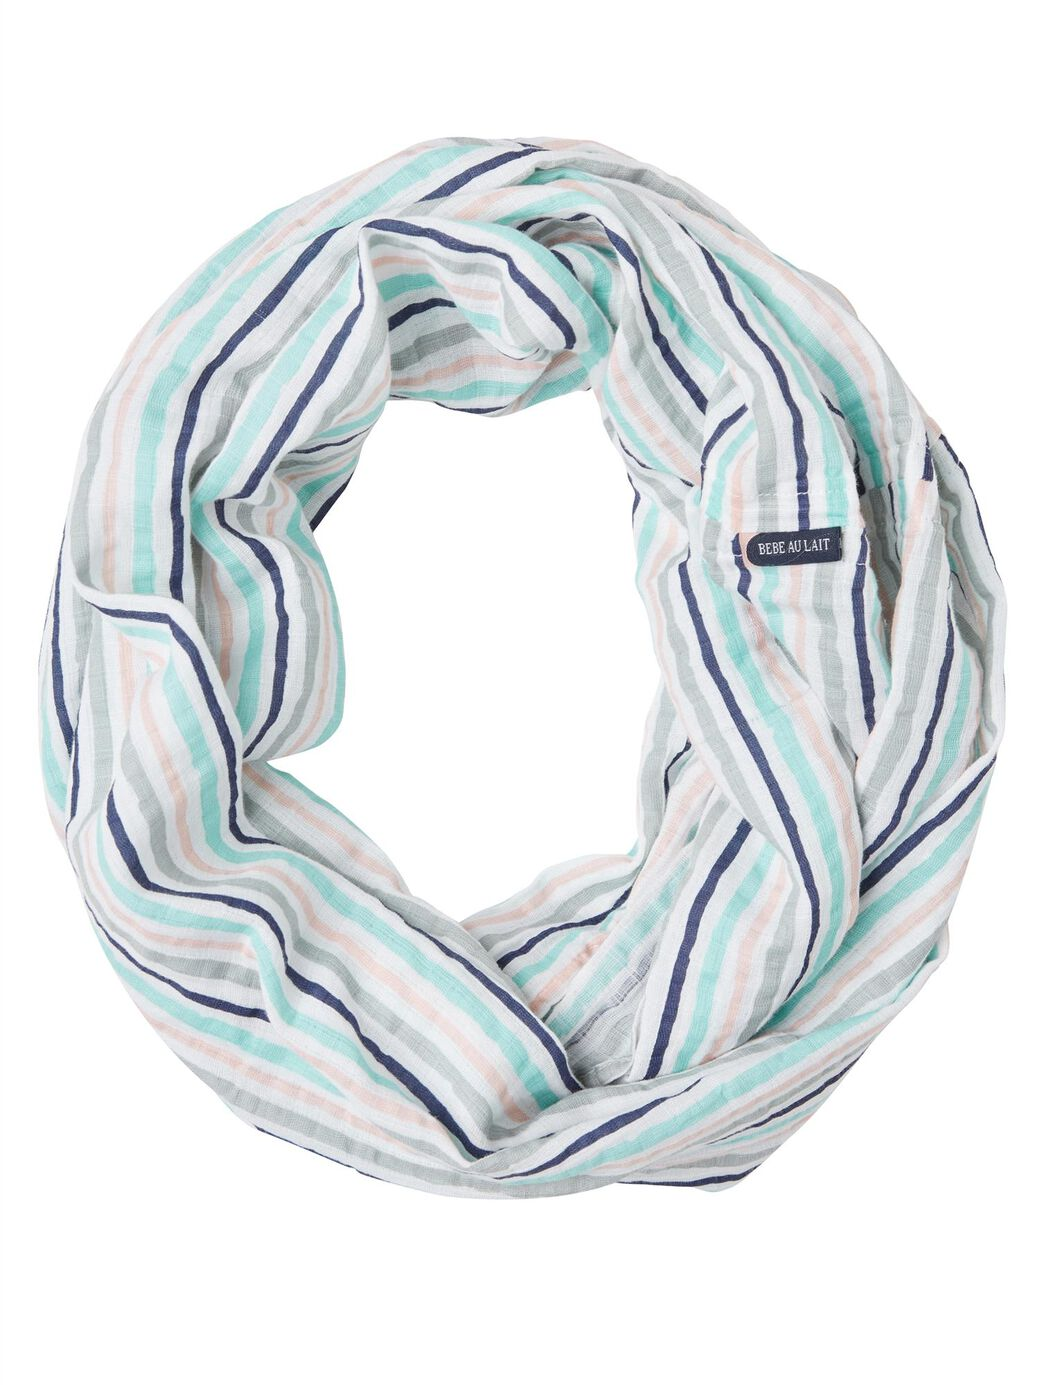 Bebe au Lait Muslin Infinity Breastfeeding Scarf- Candy Stripe at Motherhood Maternity in Victor, NY | Tuggl